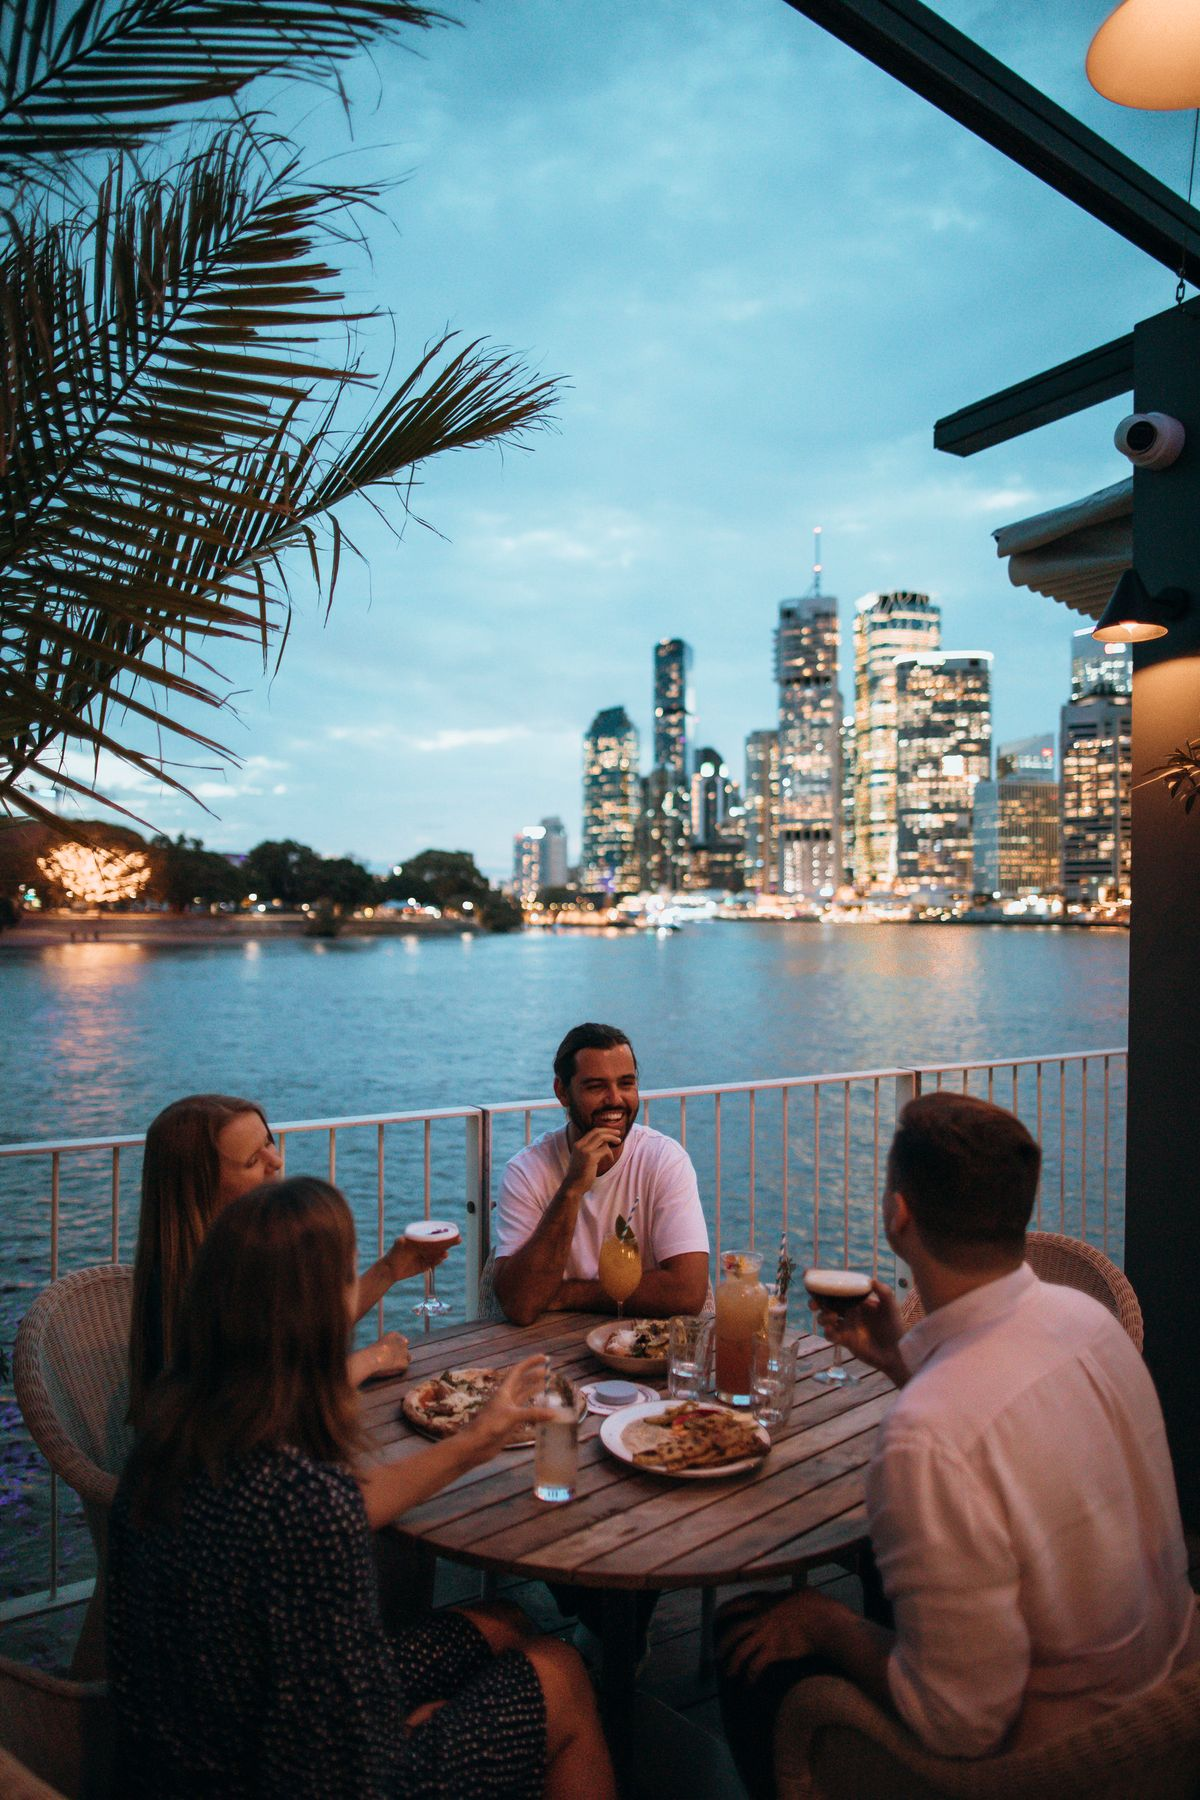 Enjoy a short break in Queensland and dine at the Howard Smith Wharves